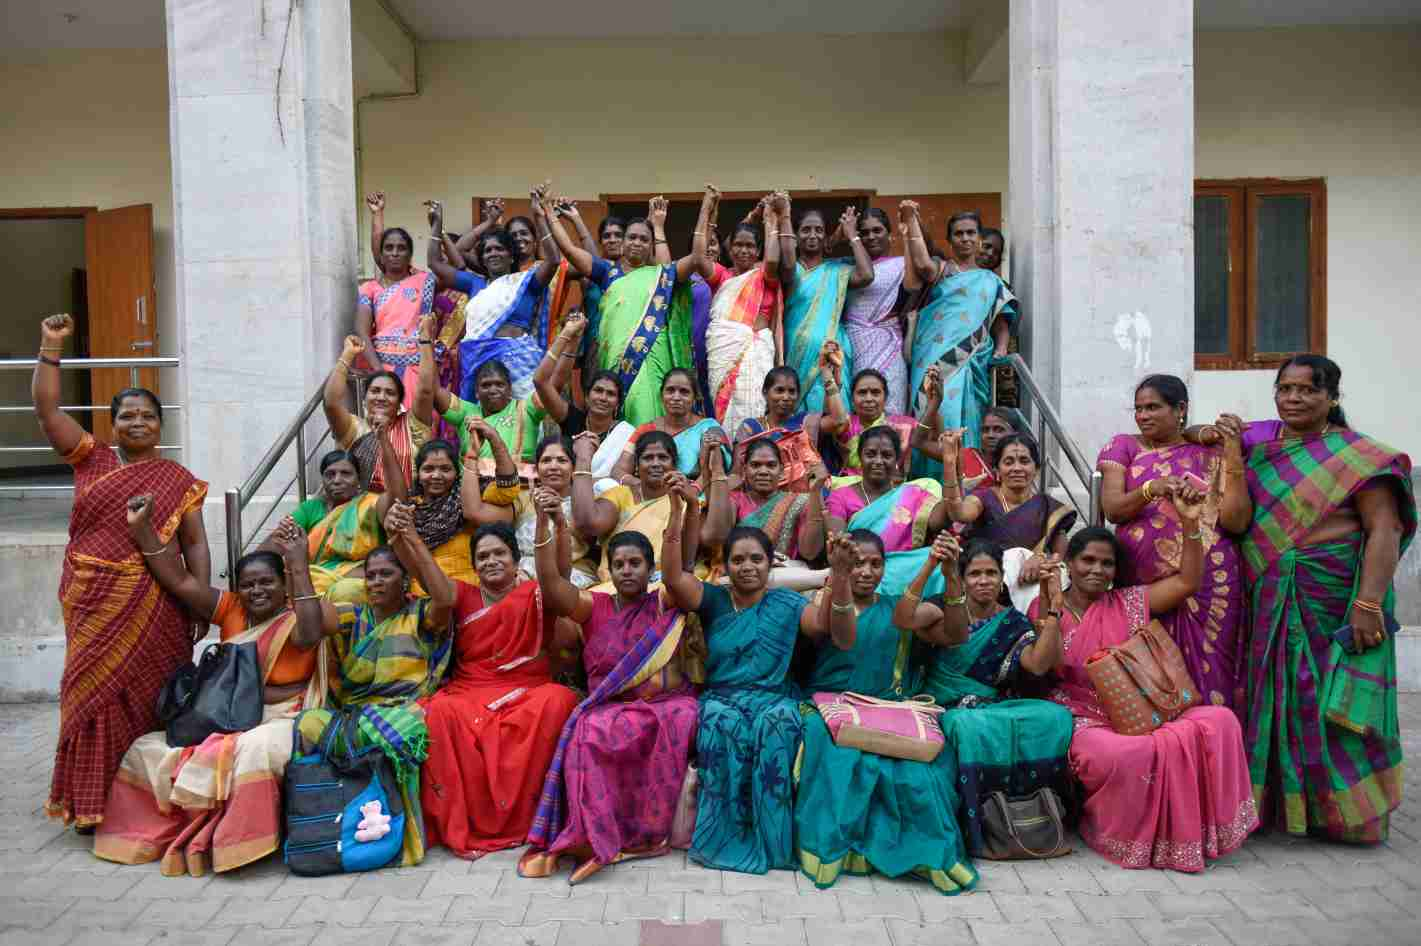 Anganwadi workers convey their unity among themselves and for their fight for rights-resilient movements